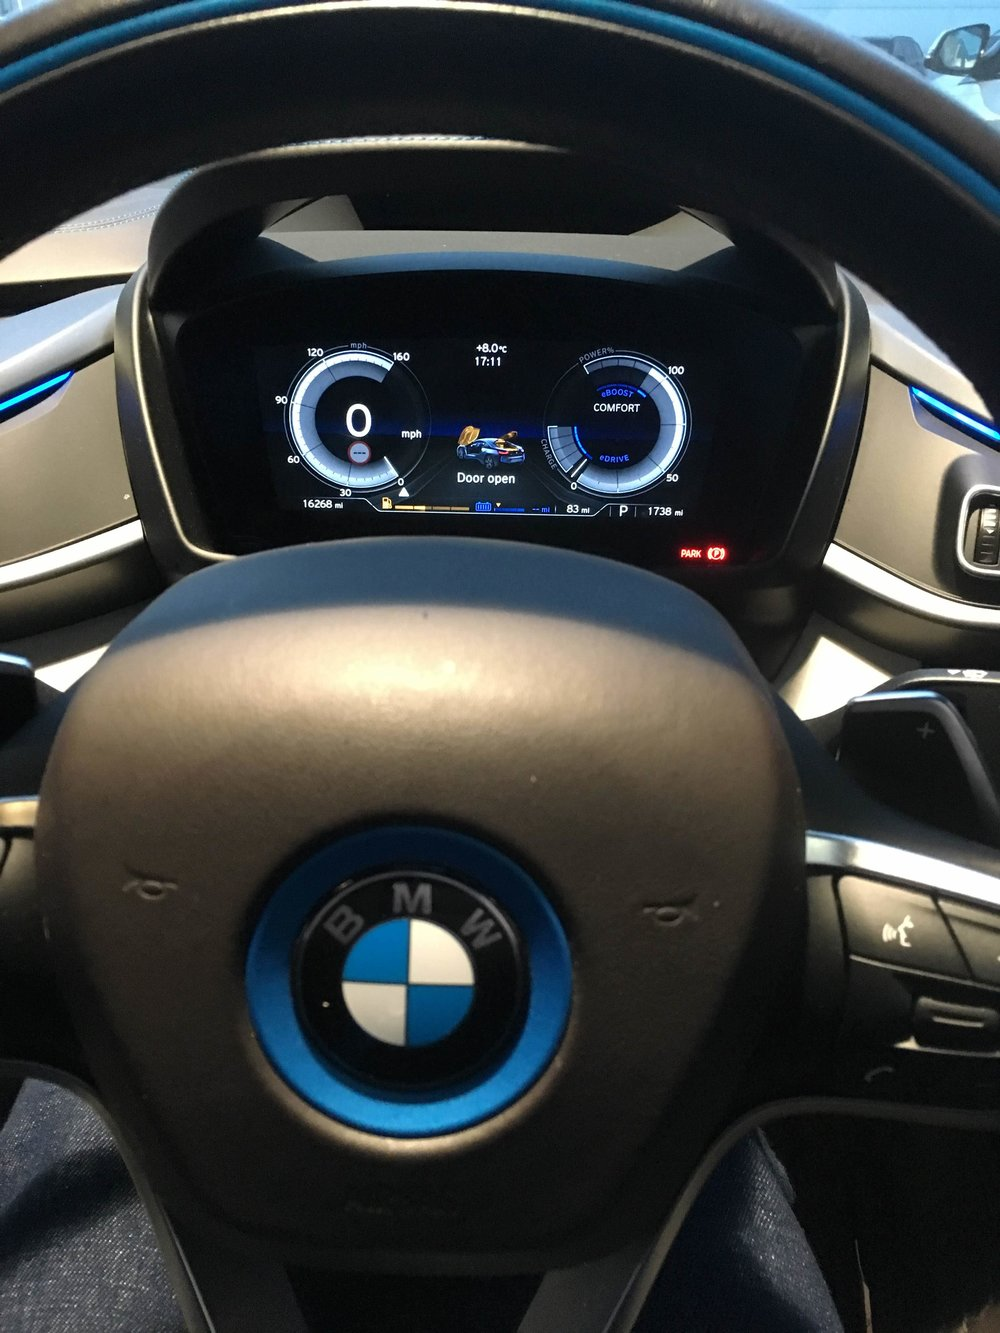 BMW badge, get used to this….